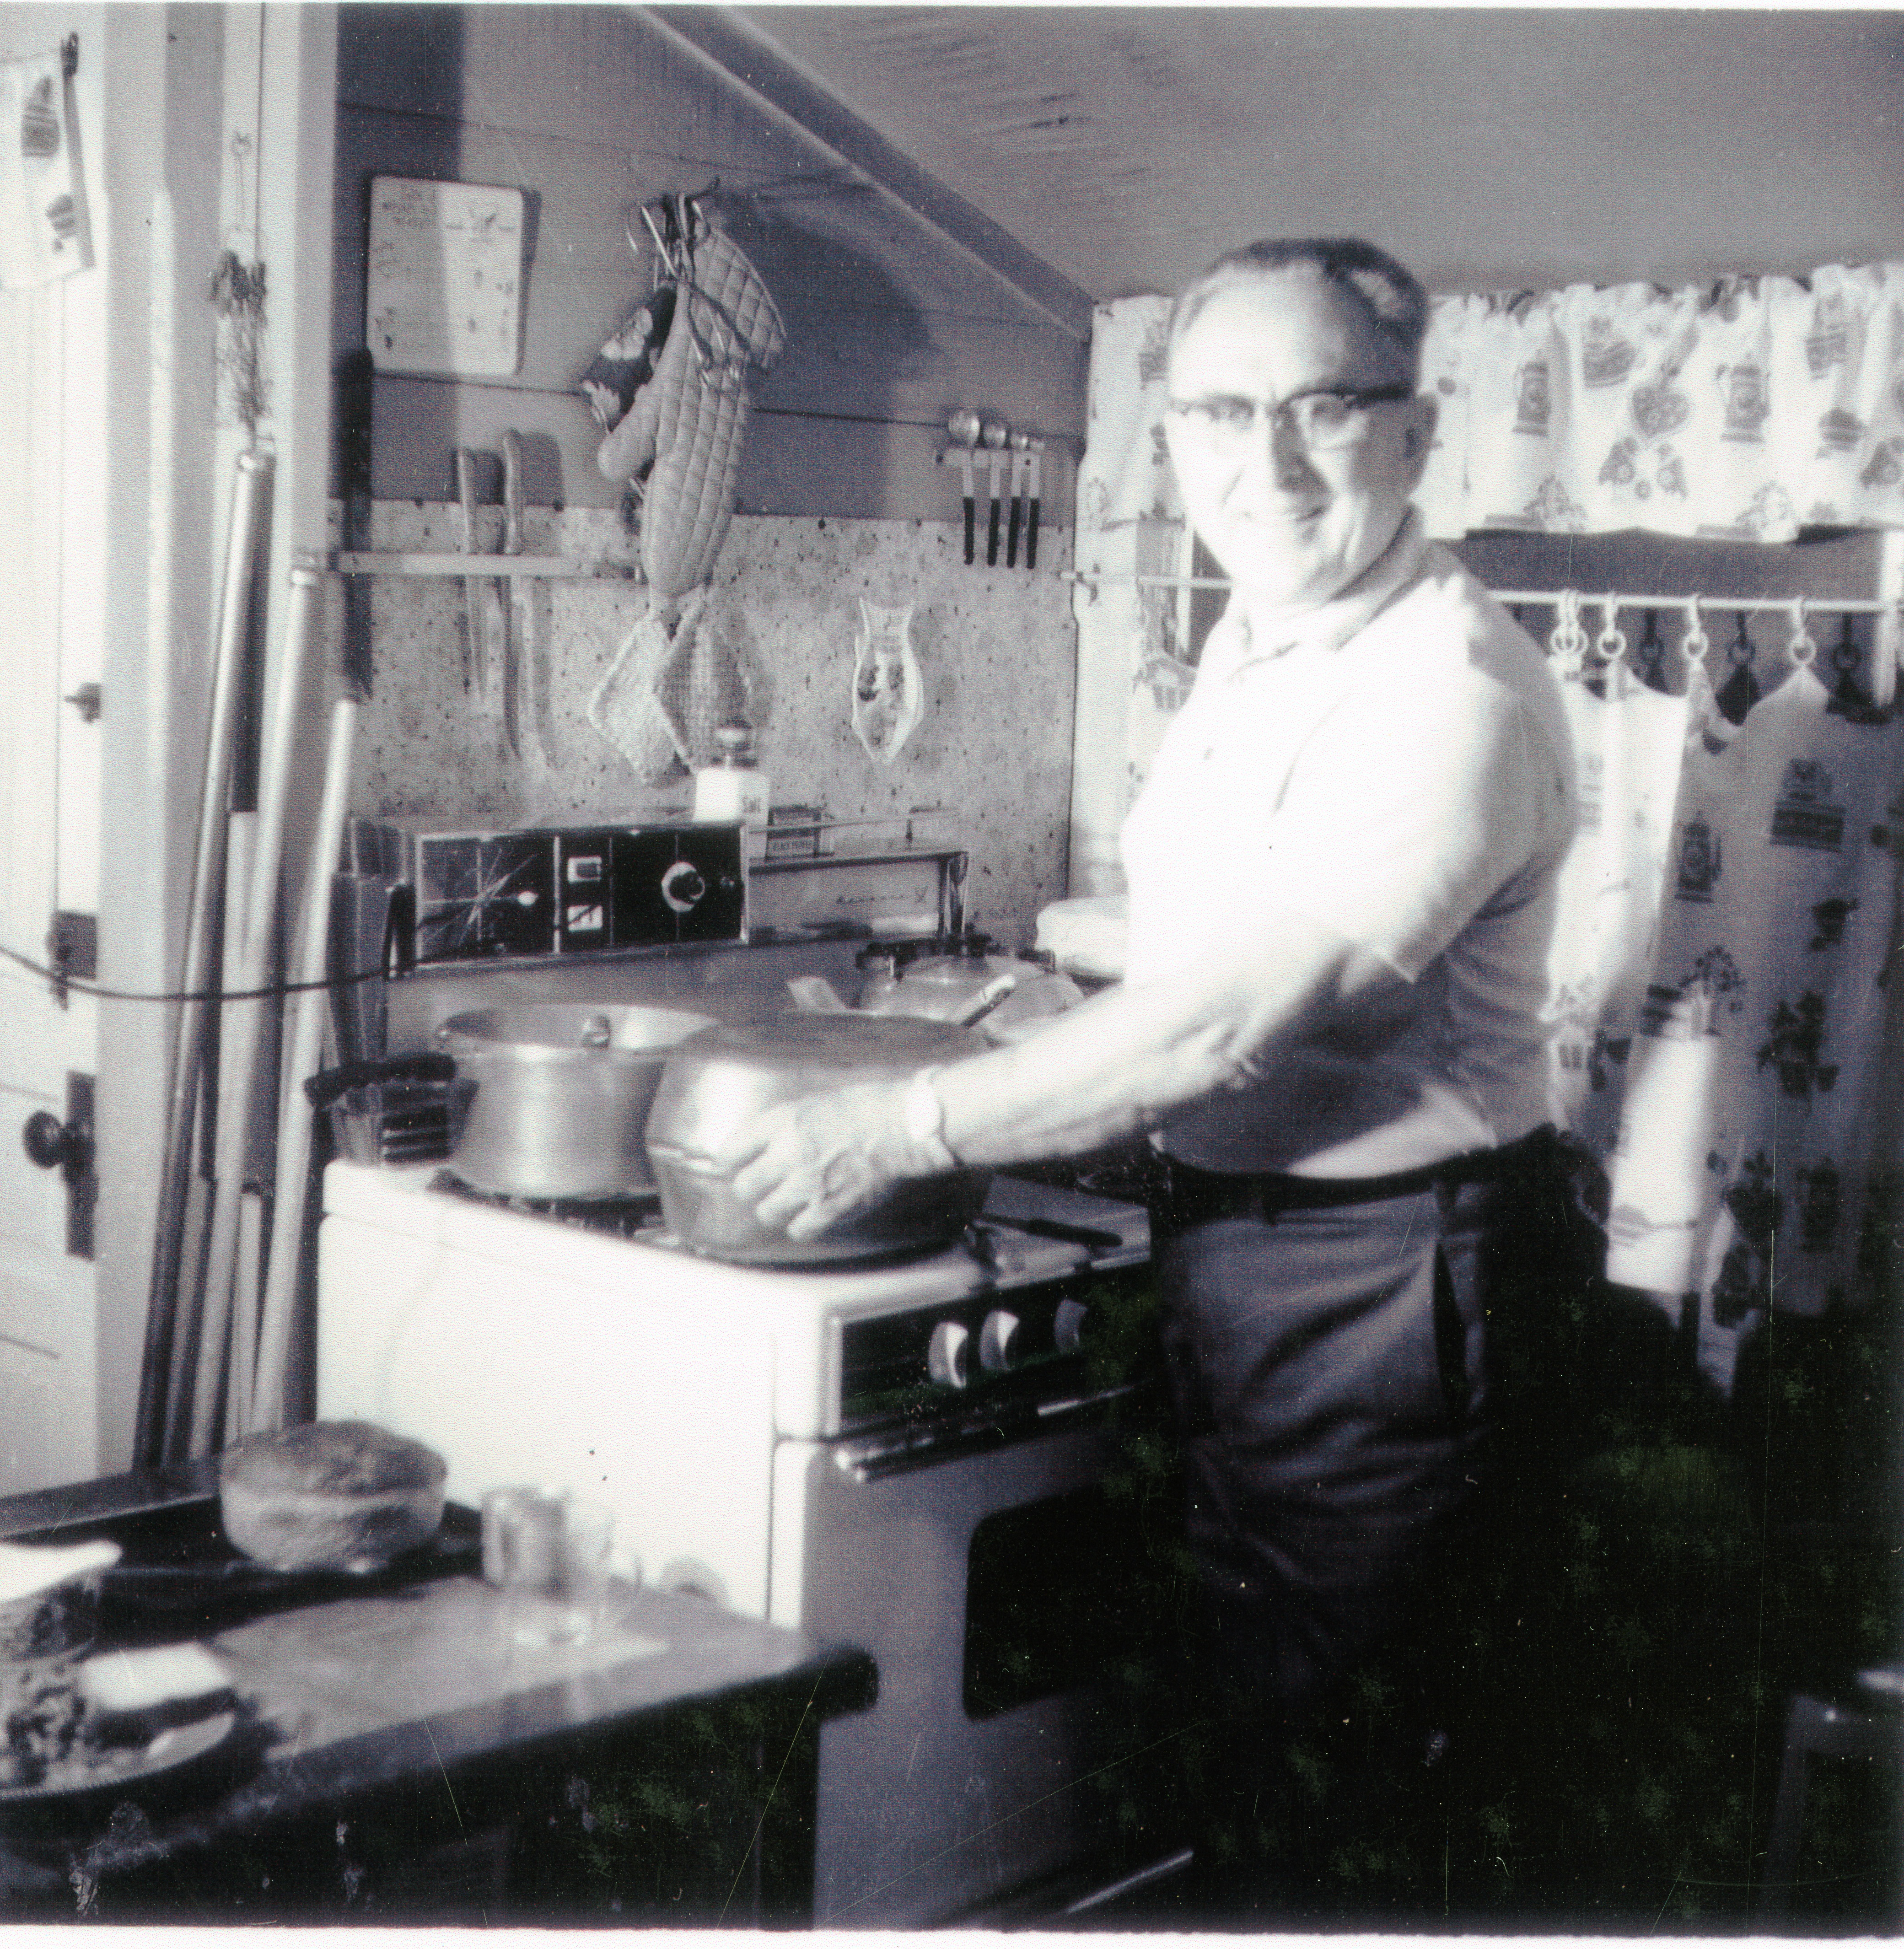 Louis Fullop in the Greenwood House kitchen, Clearwater, Florida, circa 1950.